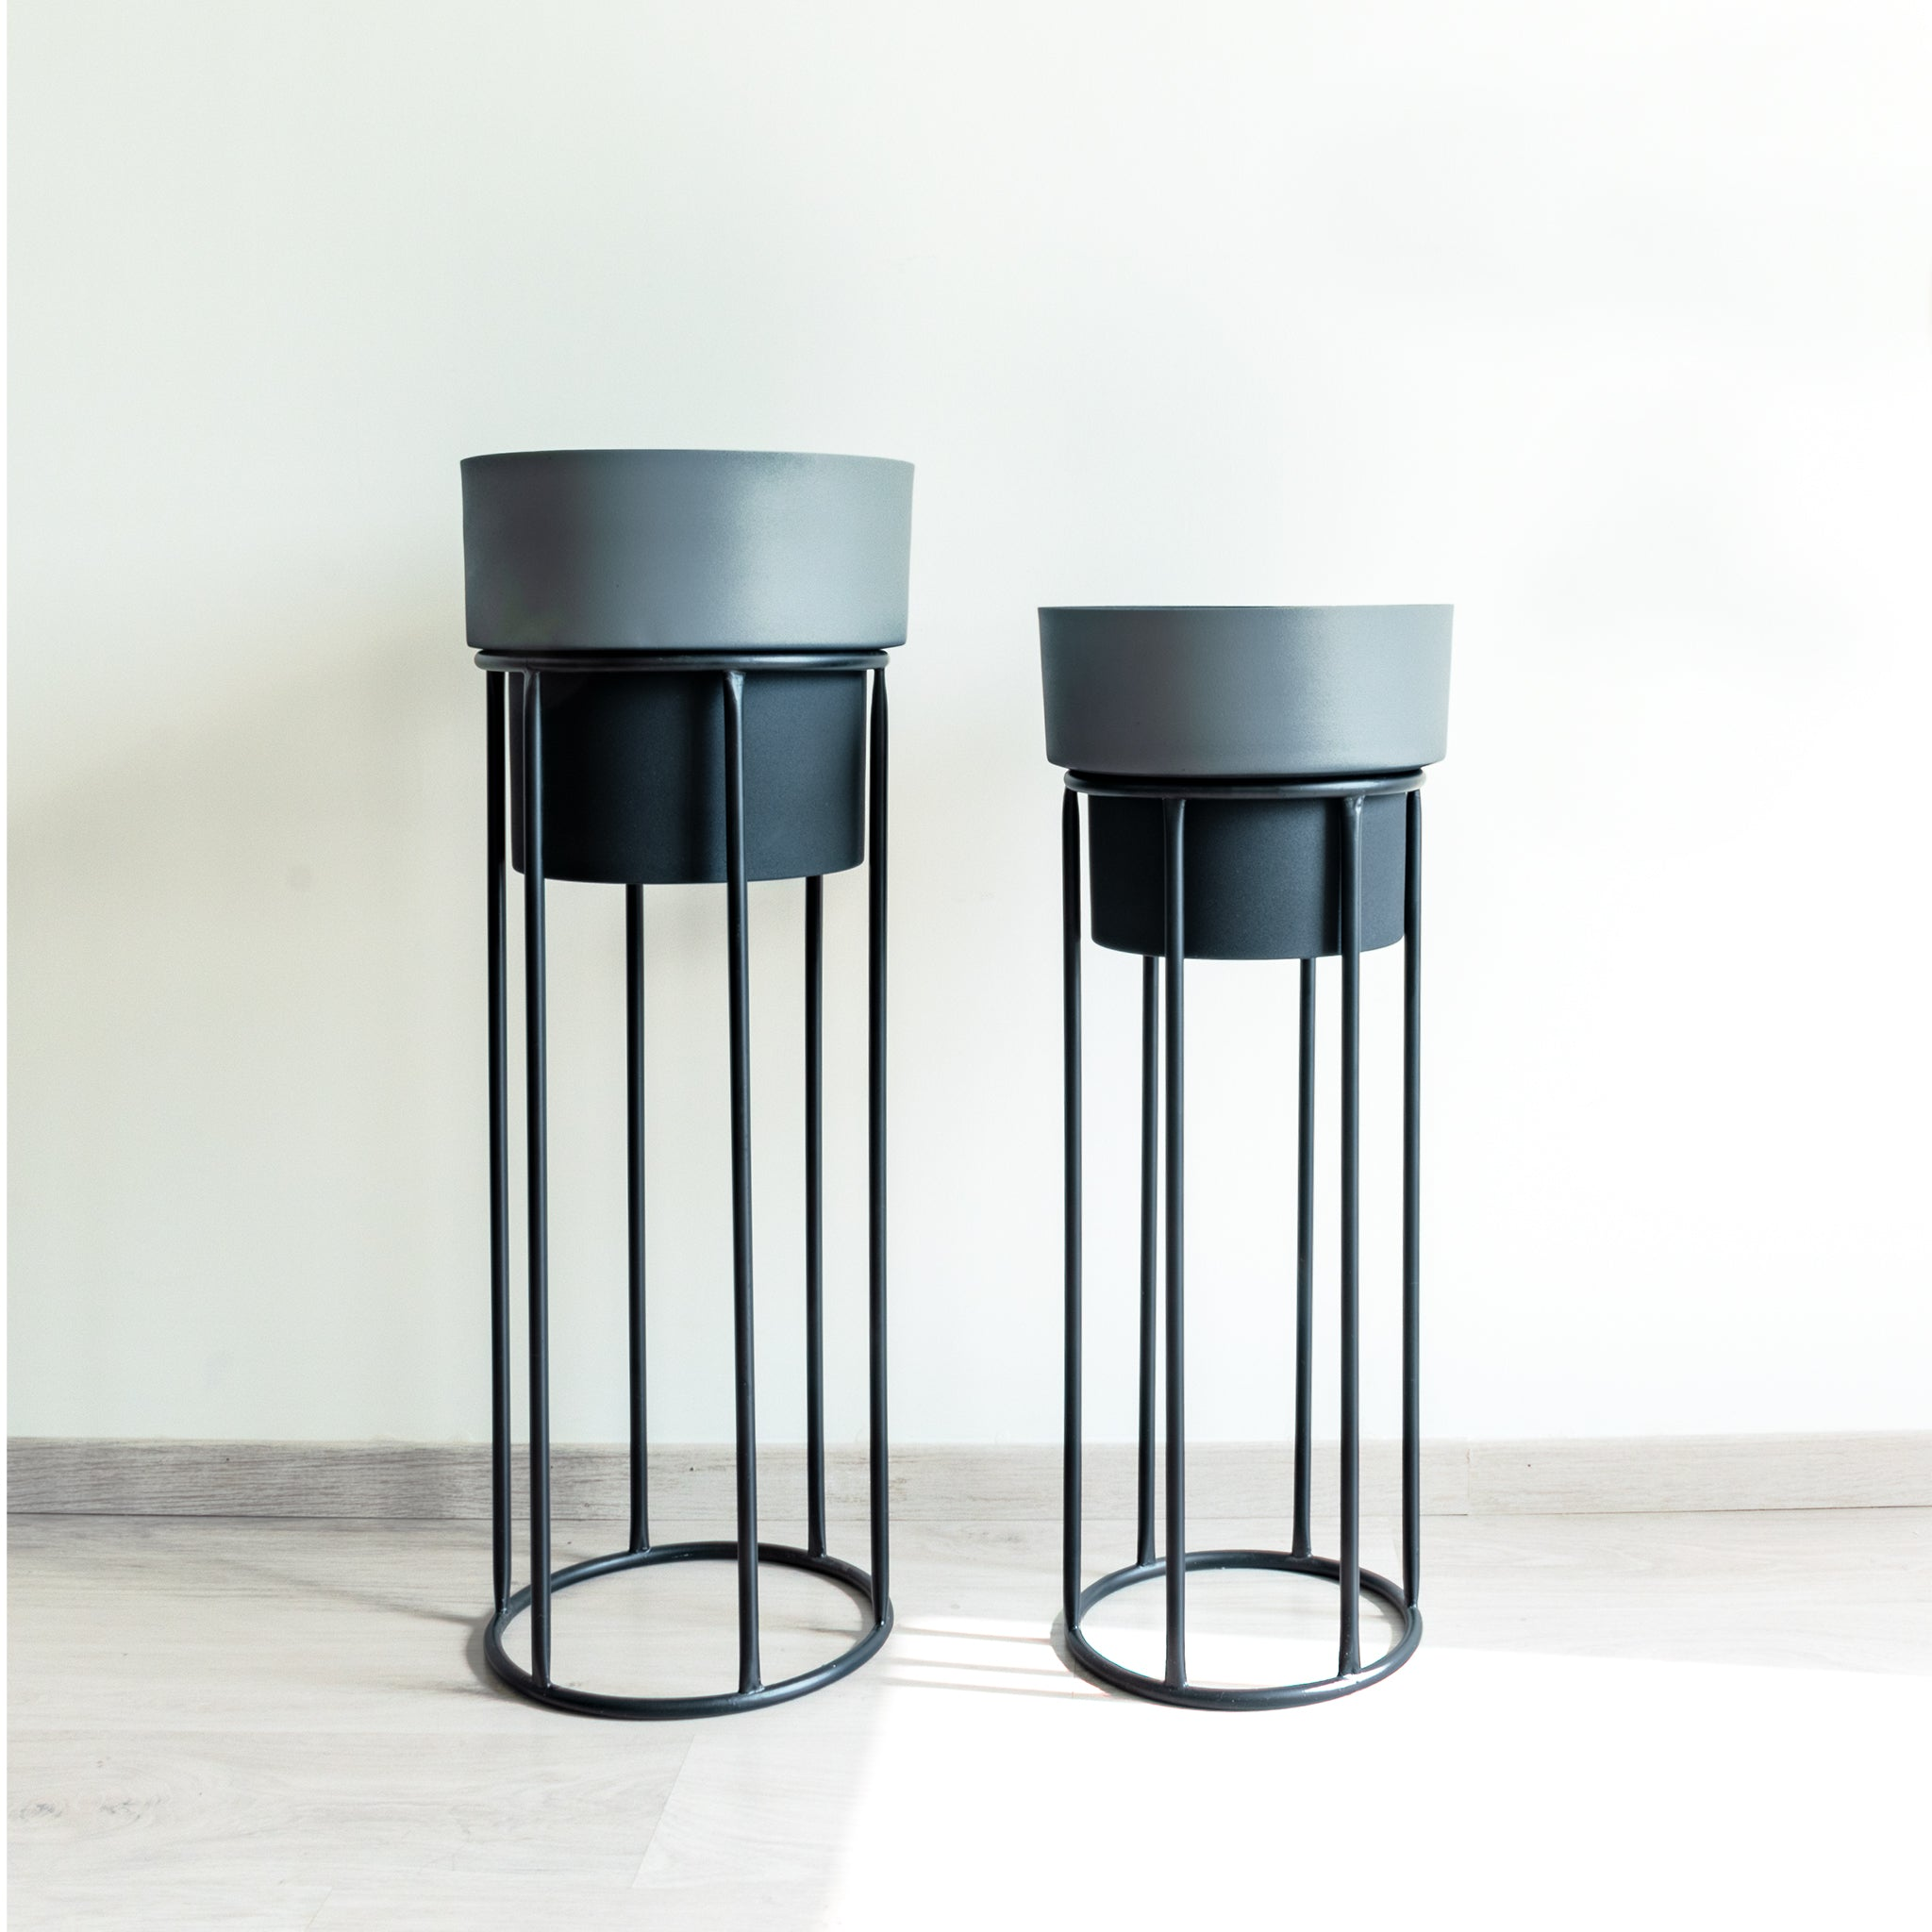 Two tall dual tone planters, slate and black with black stands.